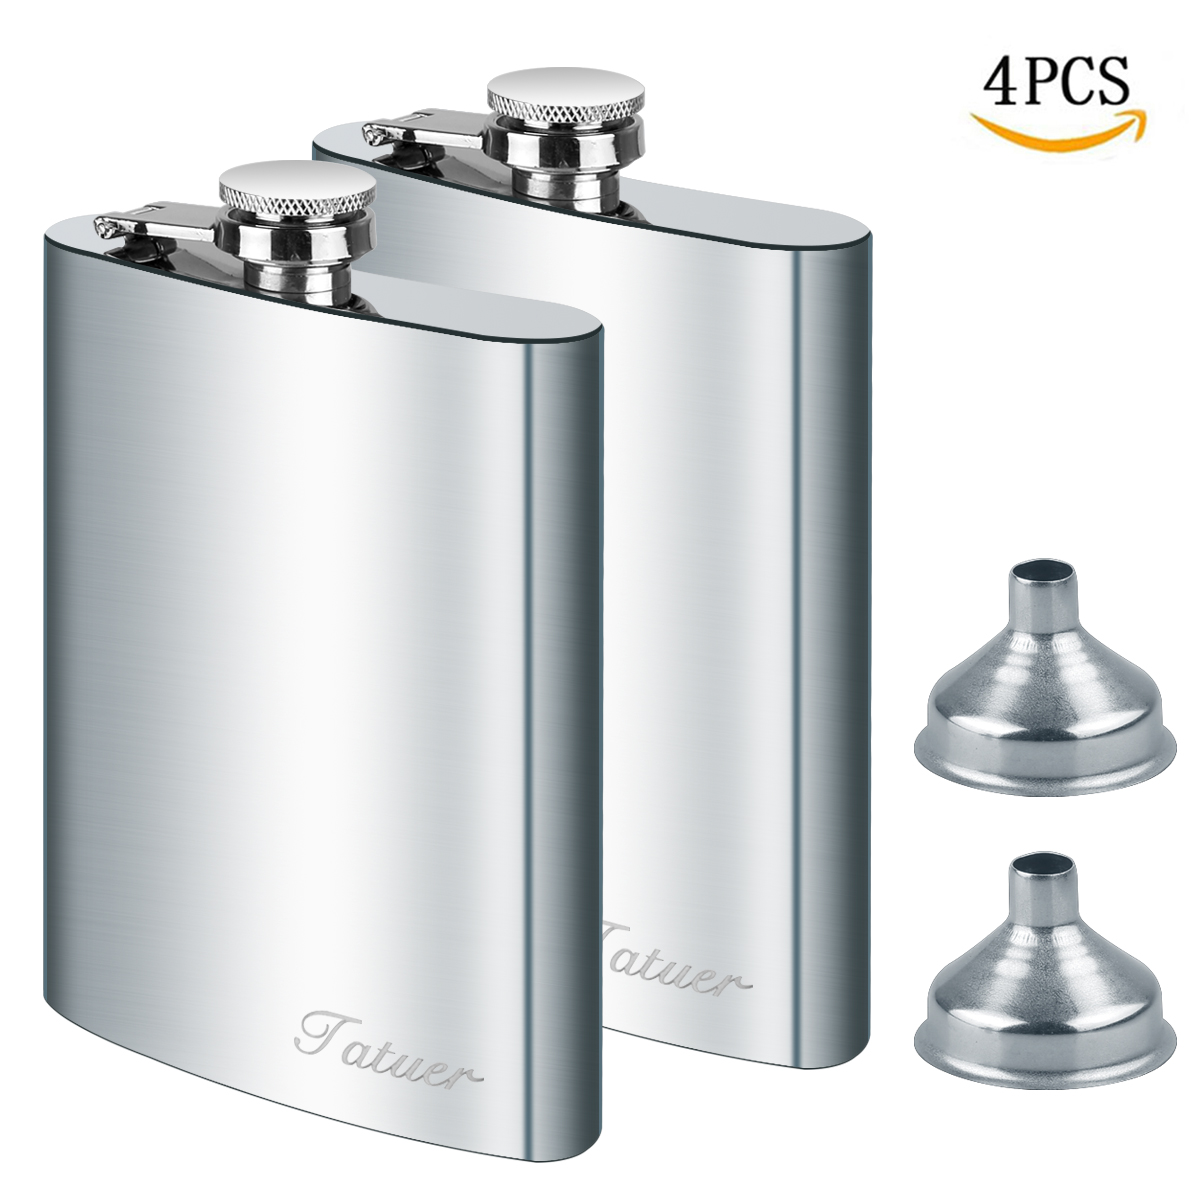 Stainless Steel Flask Funnel Set, Tatuer 2pc 8 oz Whiskey Flask Vodka Alcohol Flask, Hip Flask, Flask For Men, Flask with 2 Funnel For Ski Travel Climbing Fishing Camping 227ml Silver (8 oz)